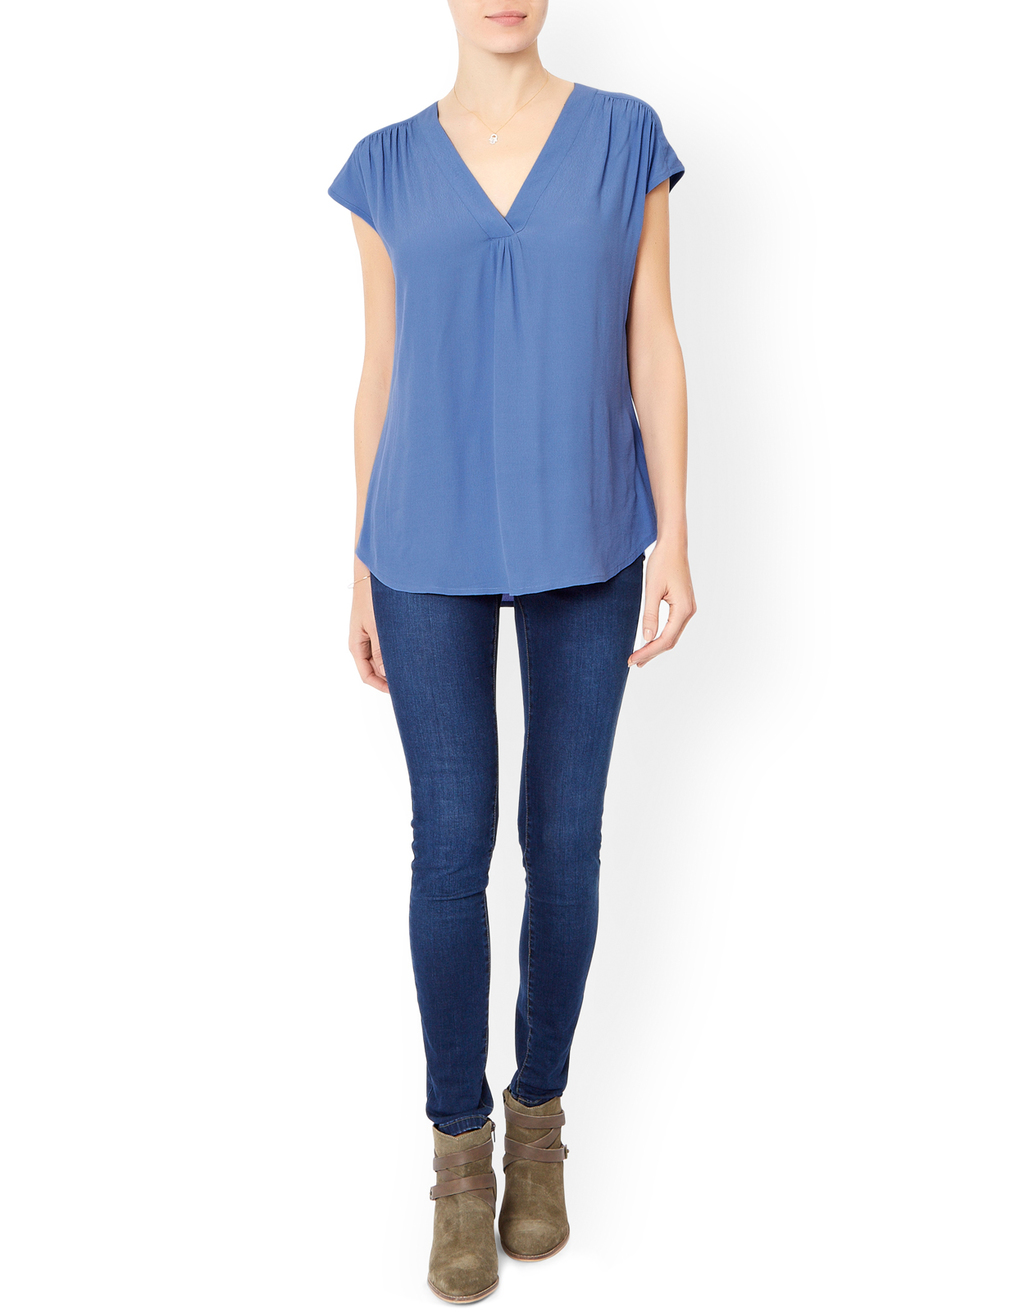 Lauren Blouse - neckline: v-neck; sleeve style: dolman/batwing; pattern: plain; style: blouse; predominant colour: denim; occasions: casual, creative work; length: standard; fibres: polyester/polyamide - 100%; fit: straight cut; sleeve length: long sleeve; pattern type: fabric; texture group: jersey - stretchy/drapey; season: a/w 2015